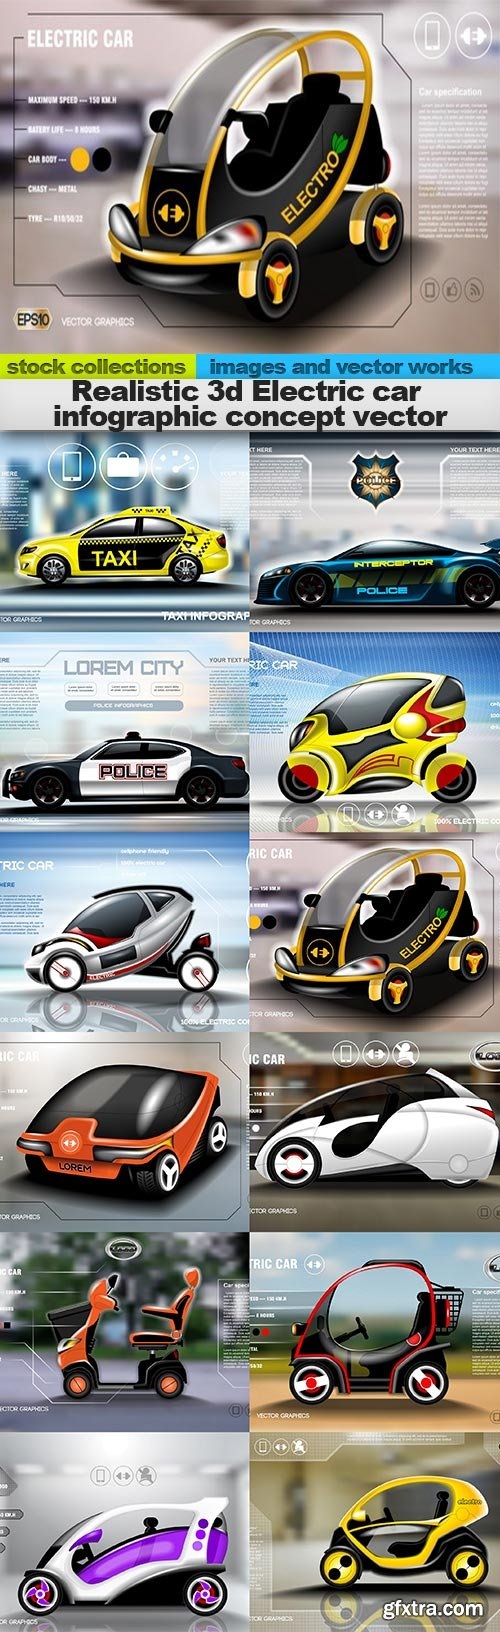 Realistic 3d Electric car infographic concept vector, 12 x EPS